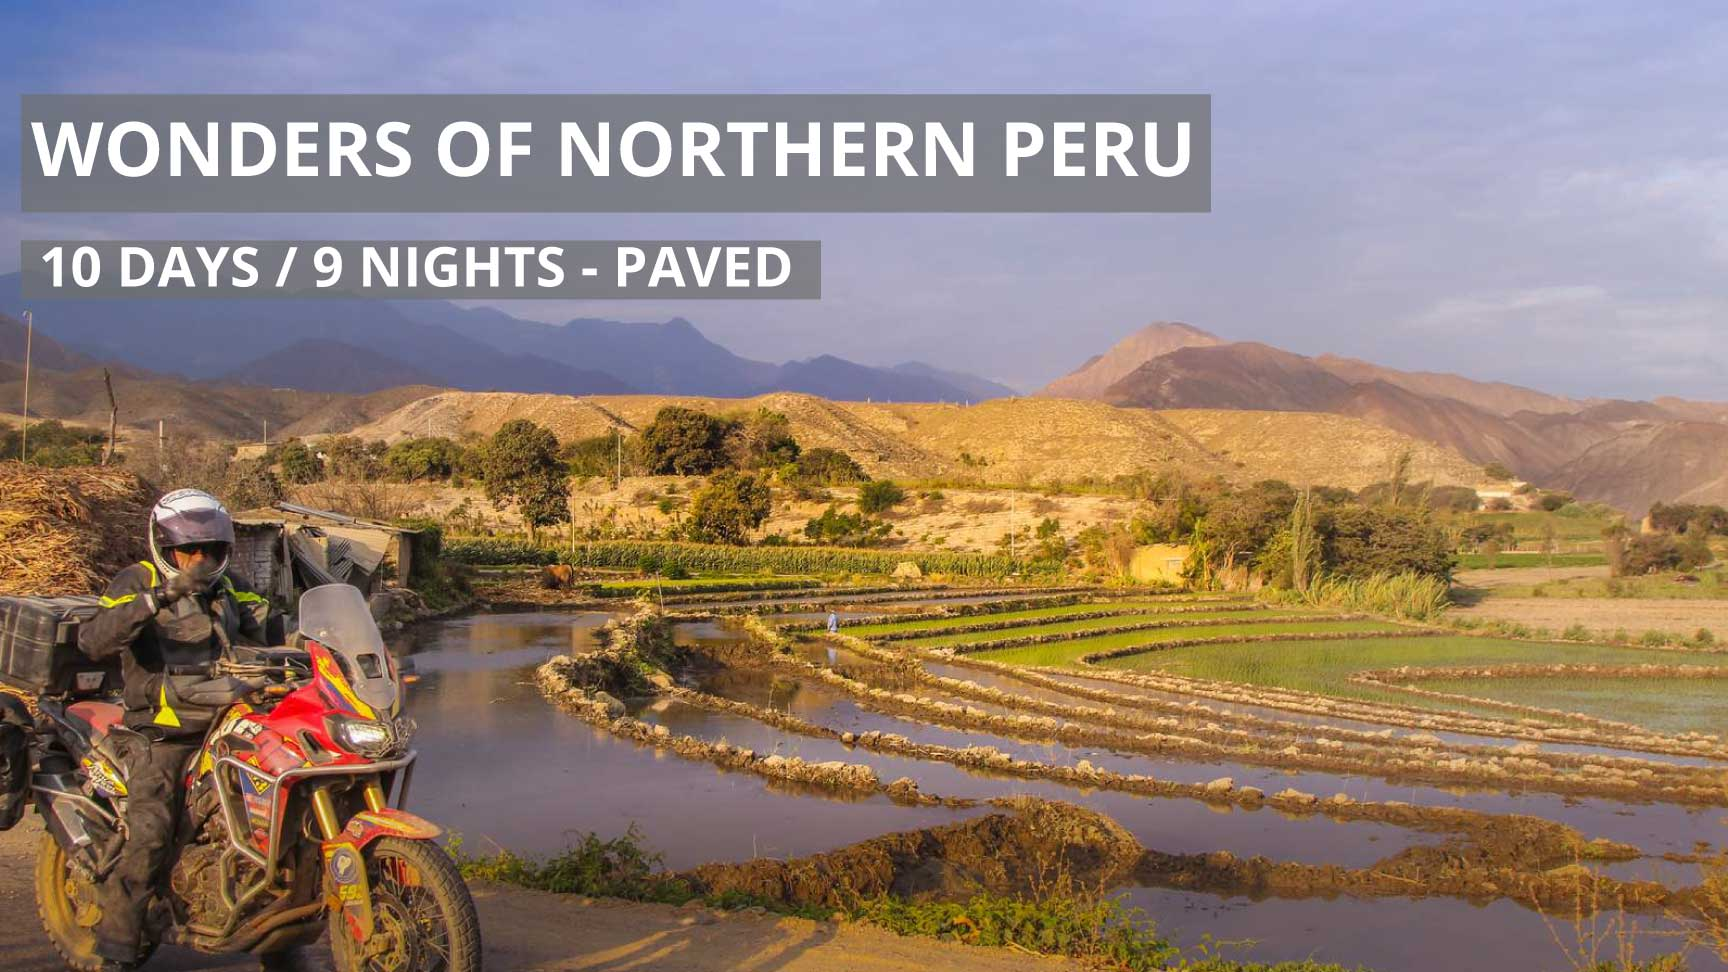 Wonders of Northern Peru Self-Guided Motorcycle Adventure Tour